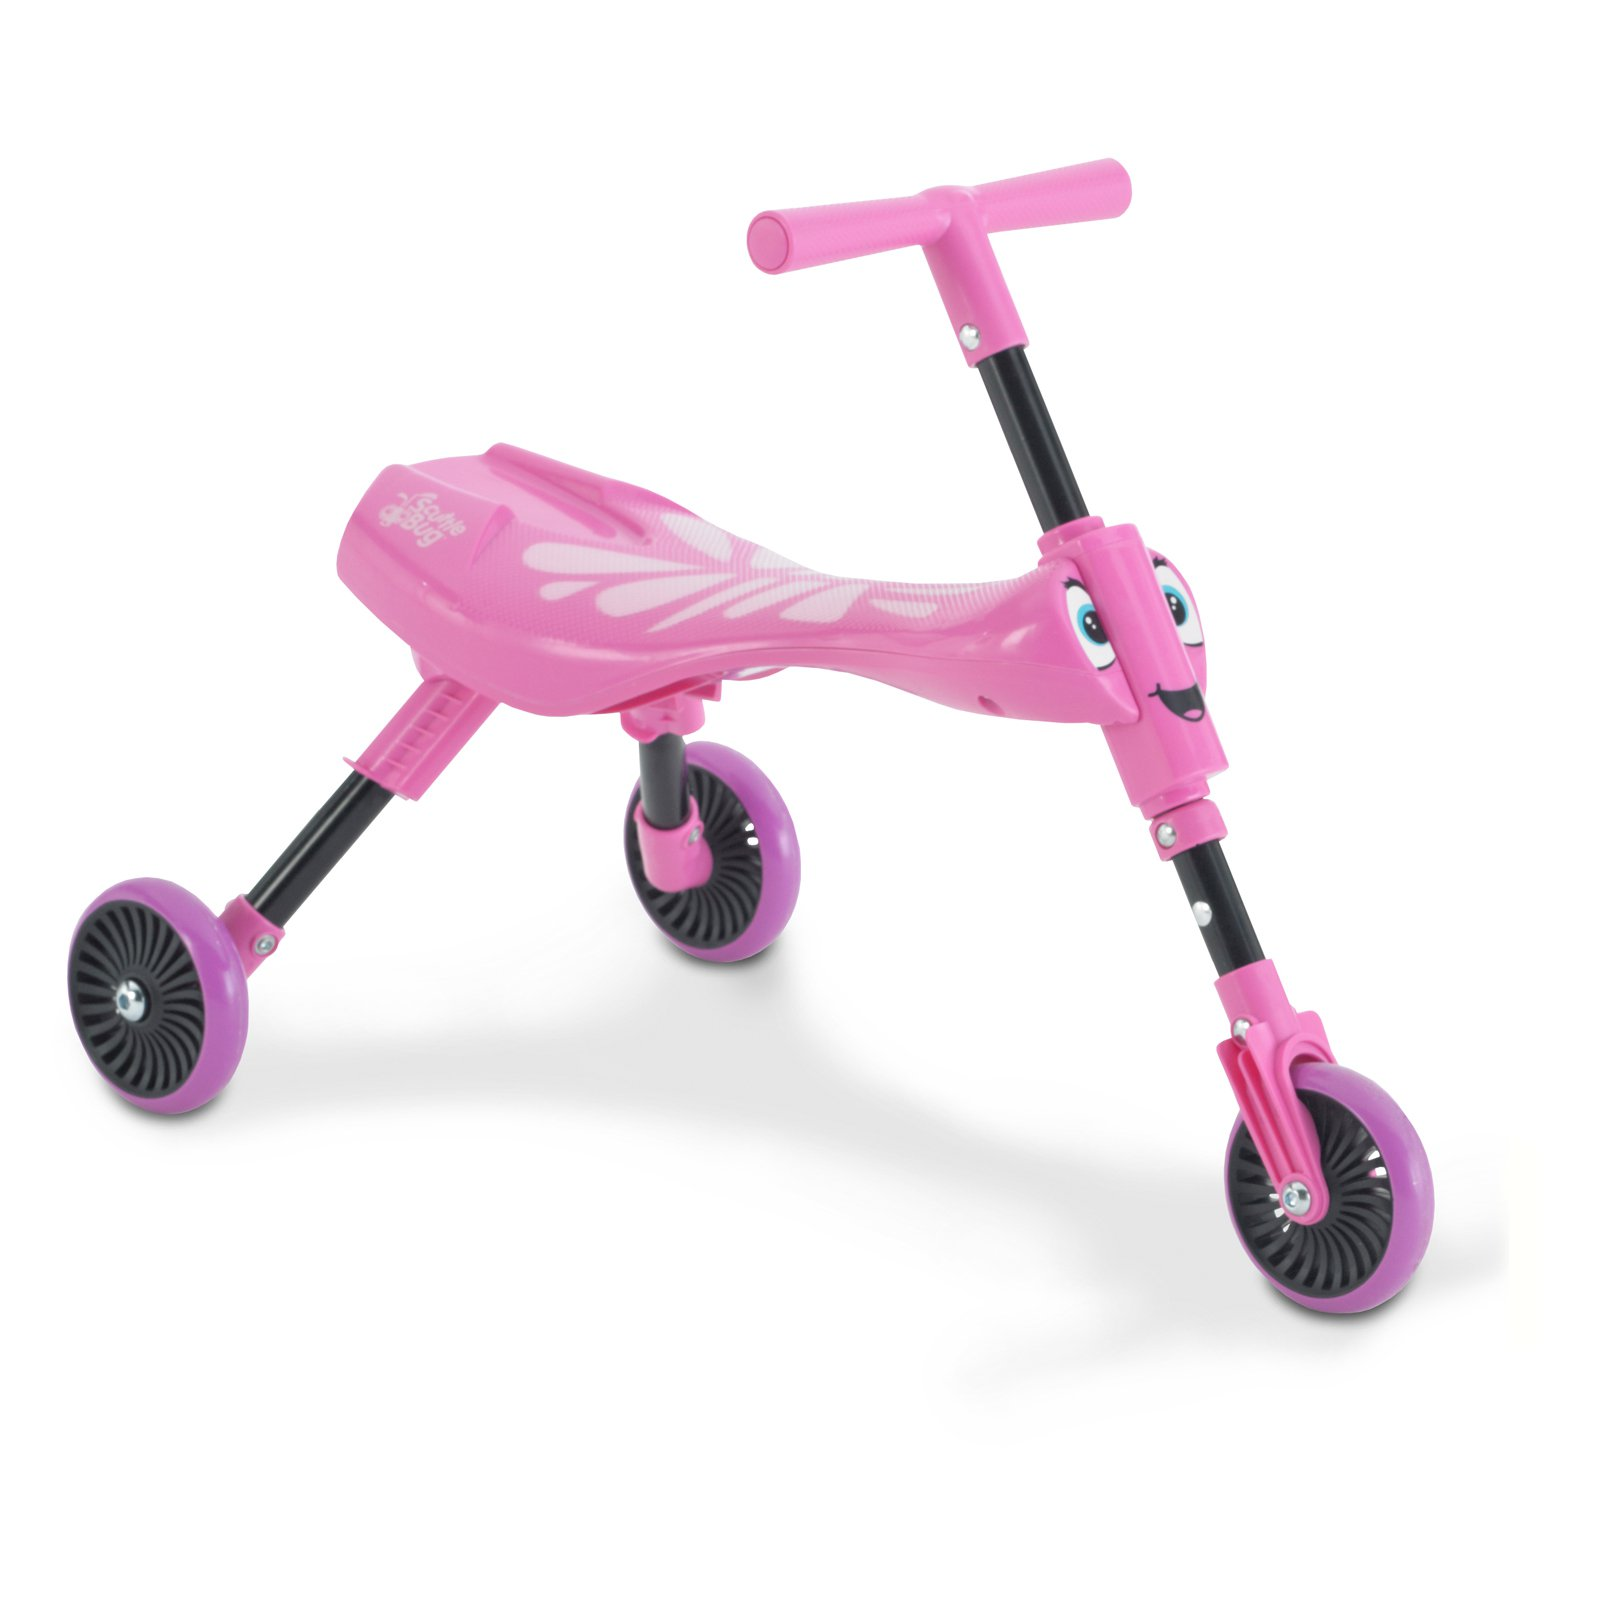 Mookie ScuttleBug Bumble 3-Wheel Foldable Ride-On